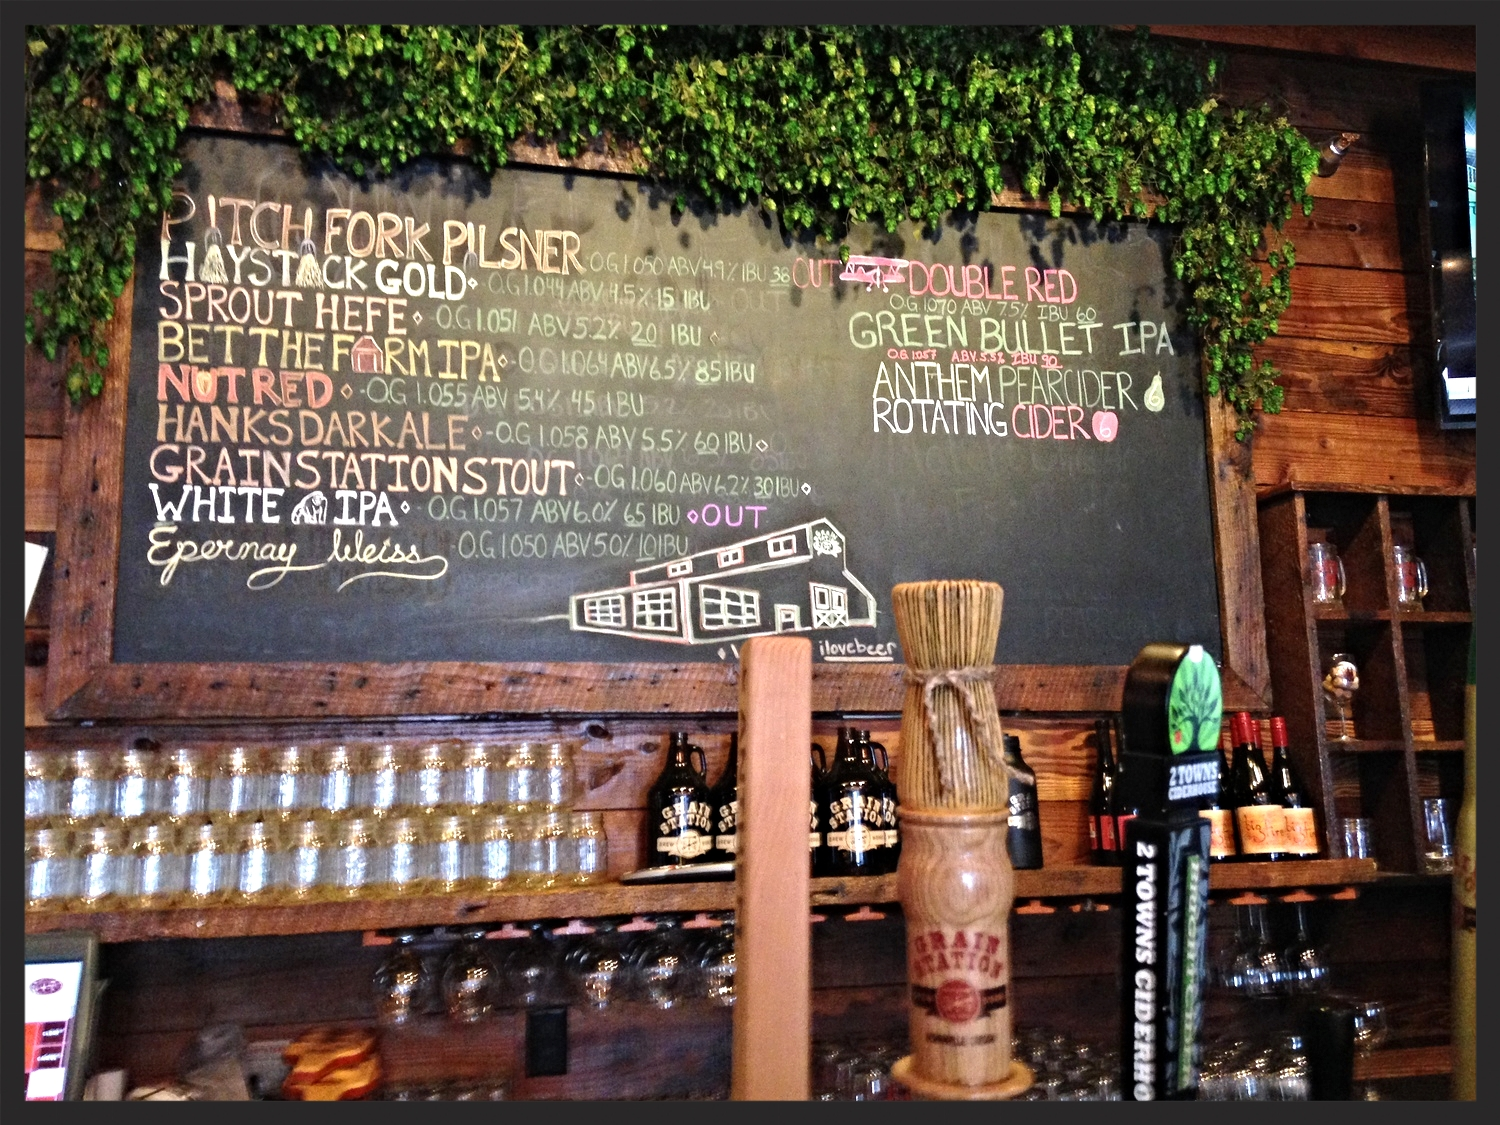 Beers on tap menu at Grain Station  | FOODABLE NETWORK